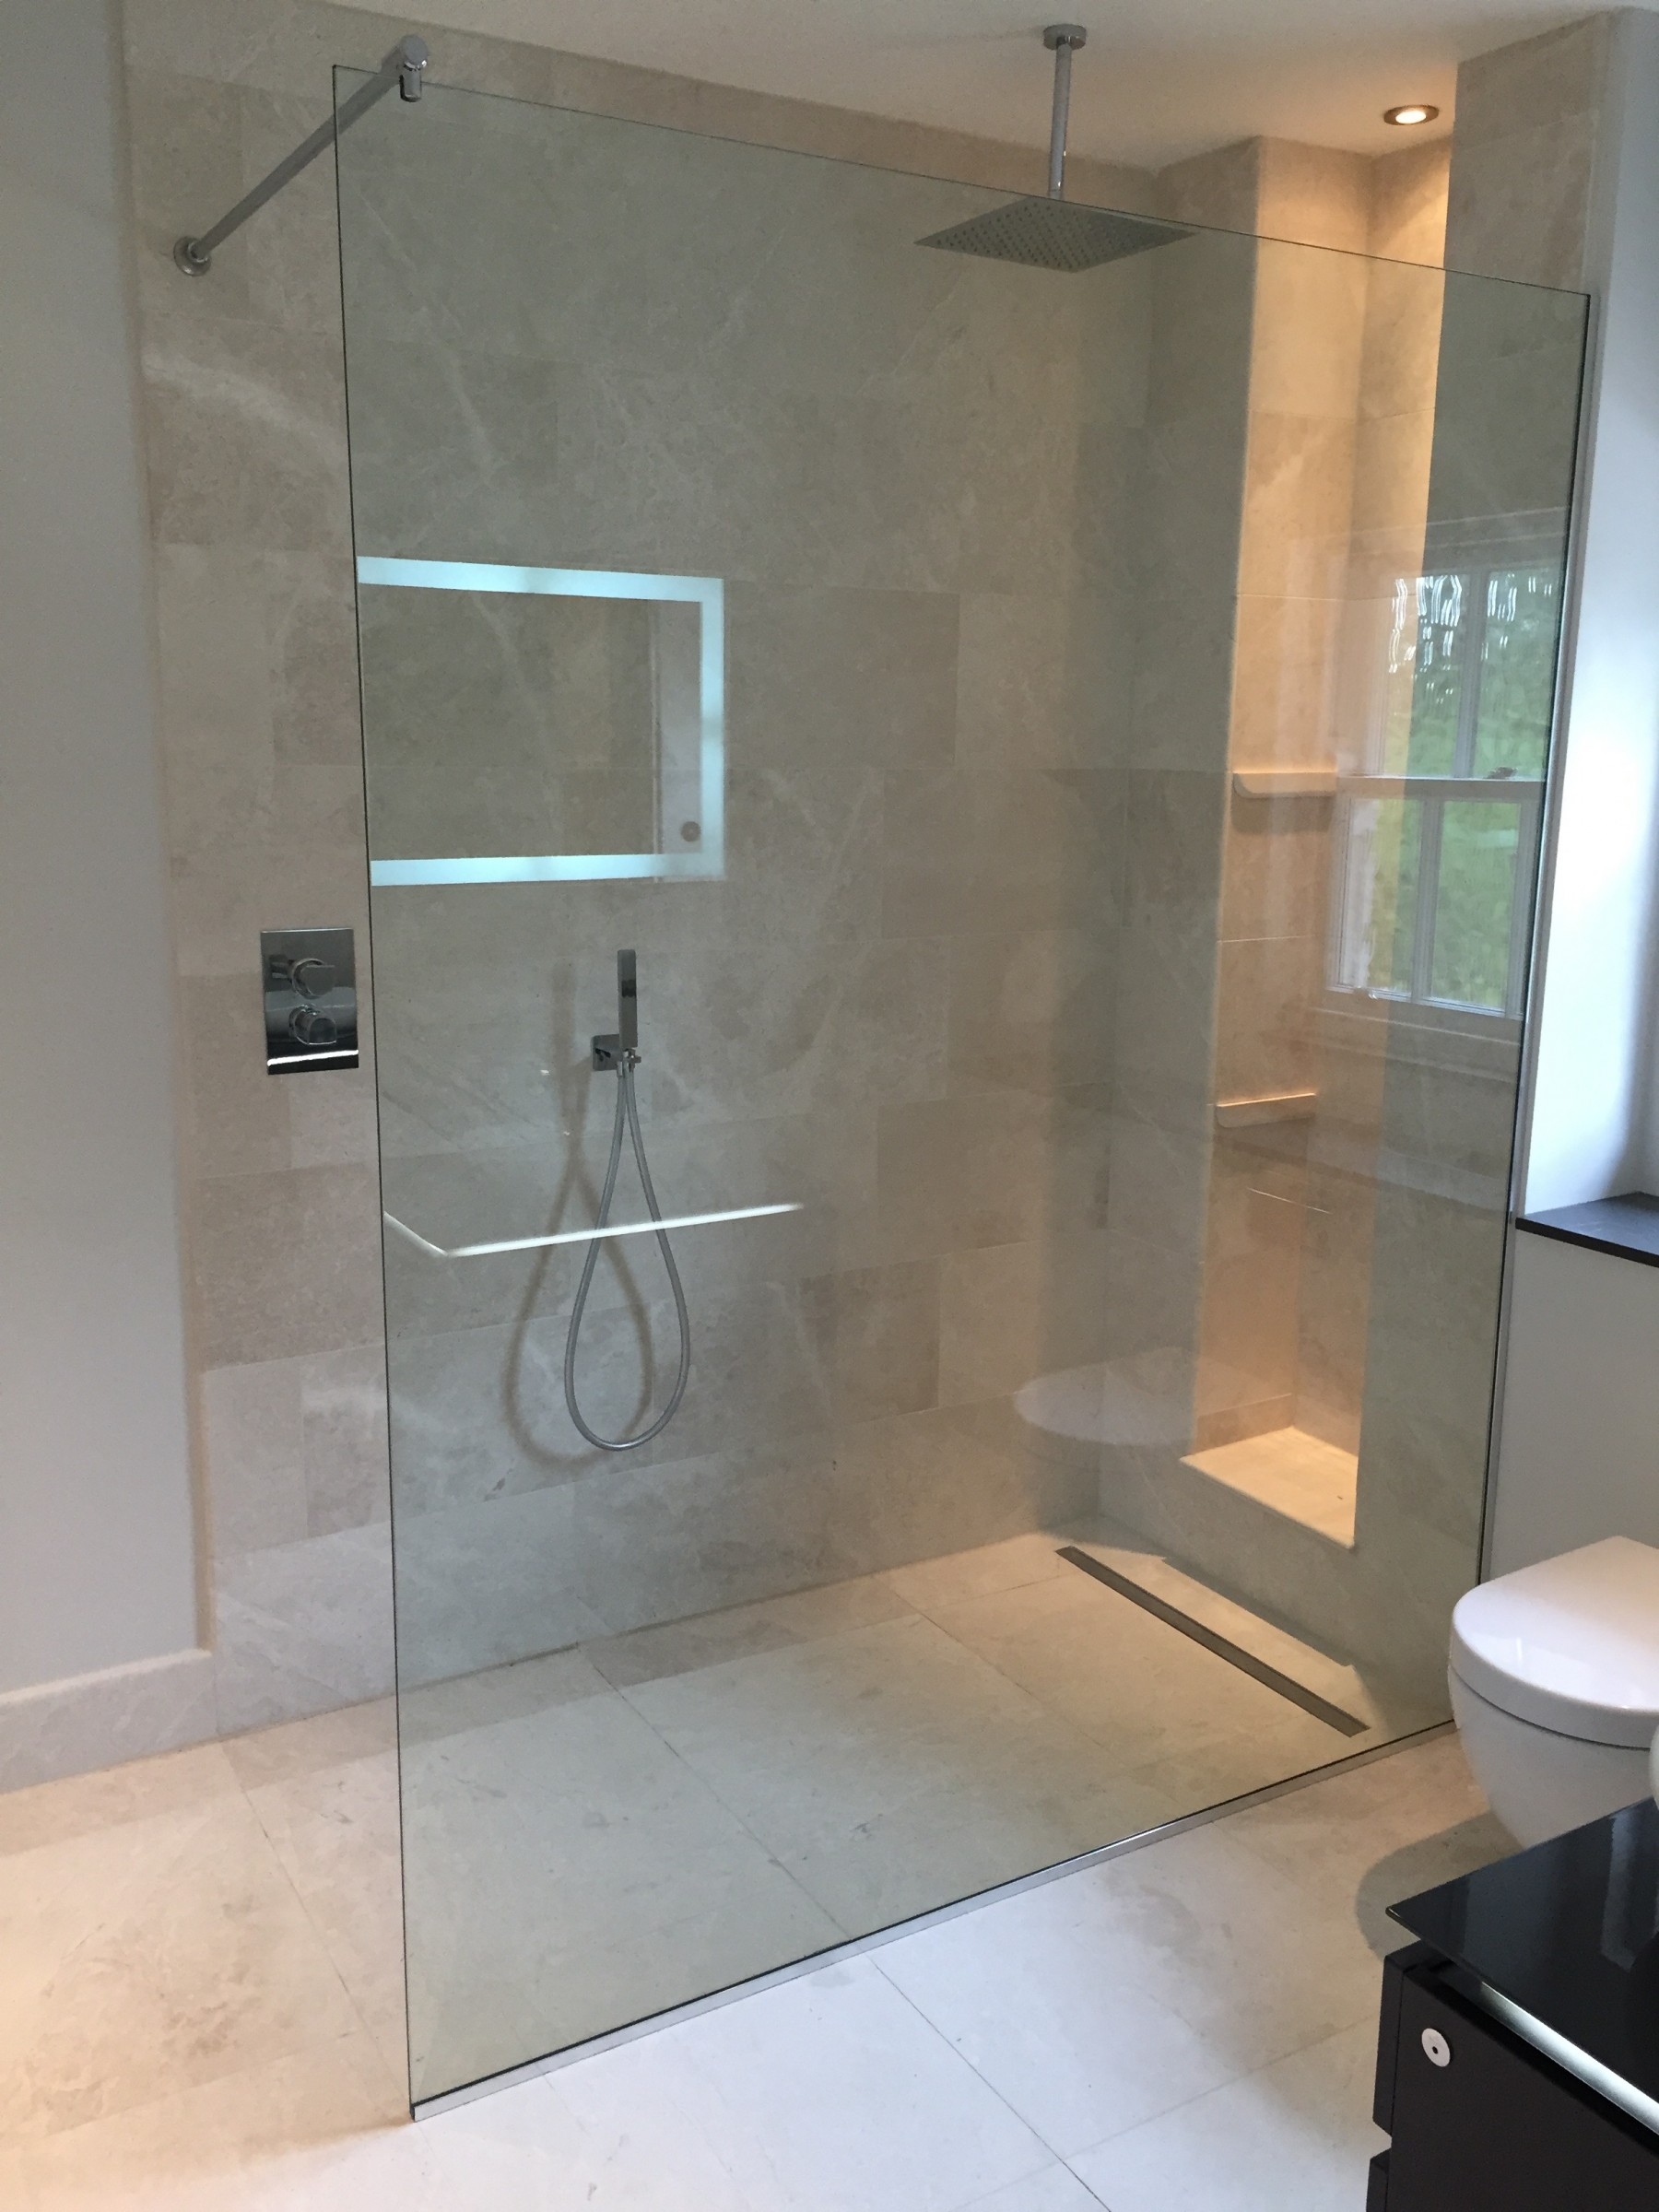 doors showerearsome door with designs fearsomelk size shower without in for dimensions full doorless walk of doorsdimensions corner ideas inspirations fearsome picture bathroom